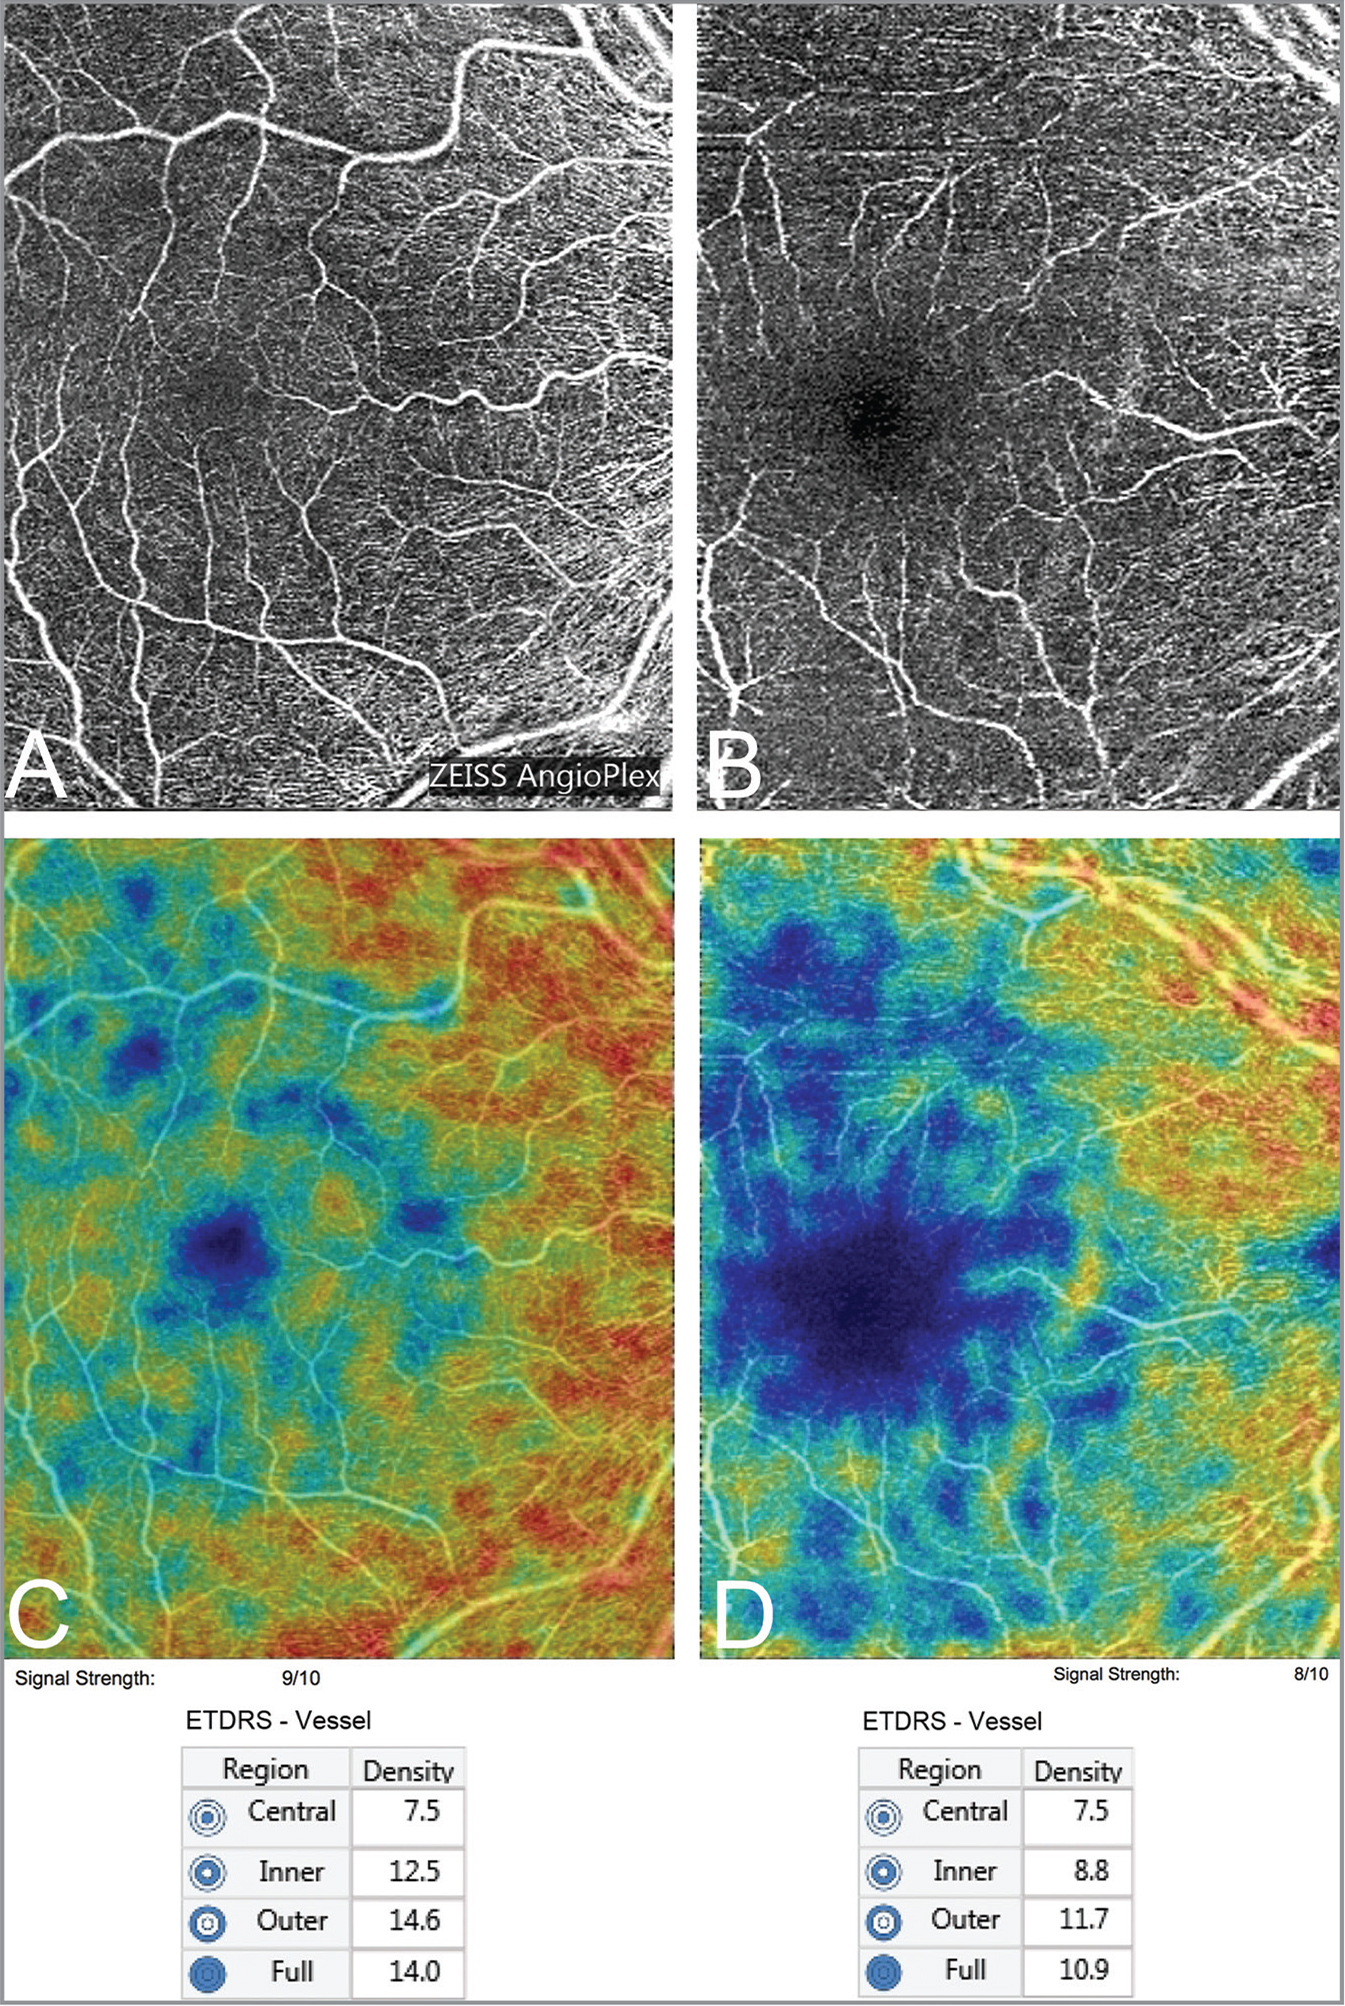 Optical coherence tomography angiography images of the superficial capillary plexus (SCP) of the twin sisters. Panel A (signal strength 9/10) shows the SCP of the cognitively normal twin with a relatively well-preserved foveal avascular zone (FAZ) and SCP, whereas B (signal strength 8/10) shows the twin with Alzheimer's disease (AD) where there is a marked decrease in the SCP vessel density and an enlarged FAZ. C and D show the corresponding quantitative color-coded vessel density maps in the SCP (Angioplex Vessel Map, SW 10.0.0.12787; Carl Zeiss Meditec, Dublin, CA; investigational use software in the U.S., commercially available in some markets outside of the U.S.) The color map shows a marked decrease in the SCP vessel density in the twin with AD (middle left) compared to the cognitively normal twin (middle right). The corresponding vessel density numerical values shown in the various Early Treatment Diabetic Retinopathy Study grid regions shown on the bottom are significantly lower in the twin with AD.